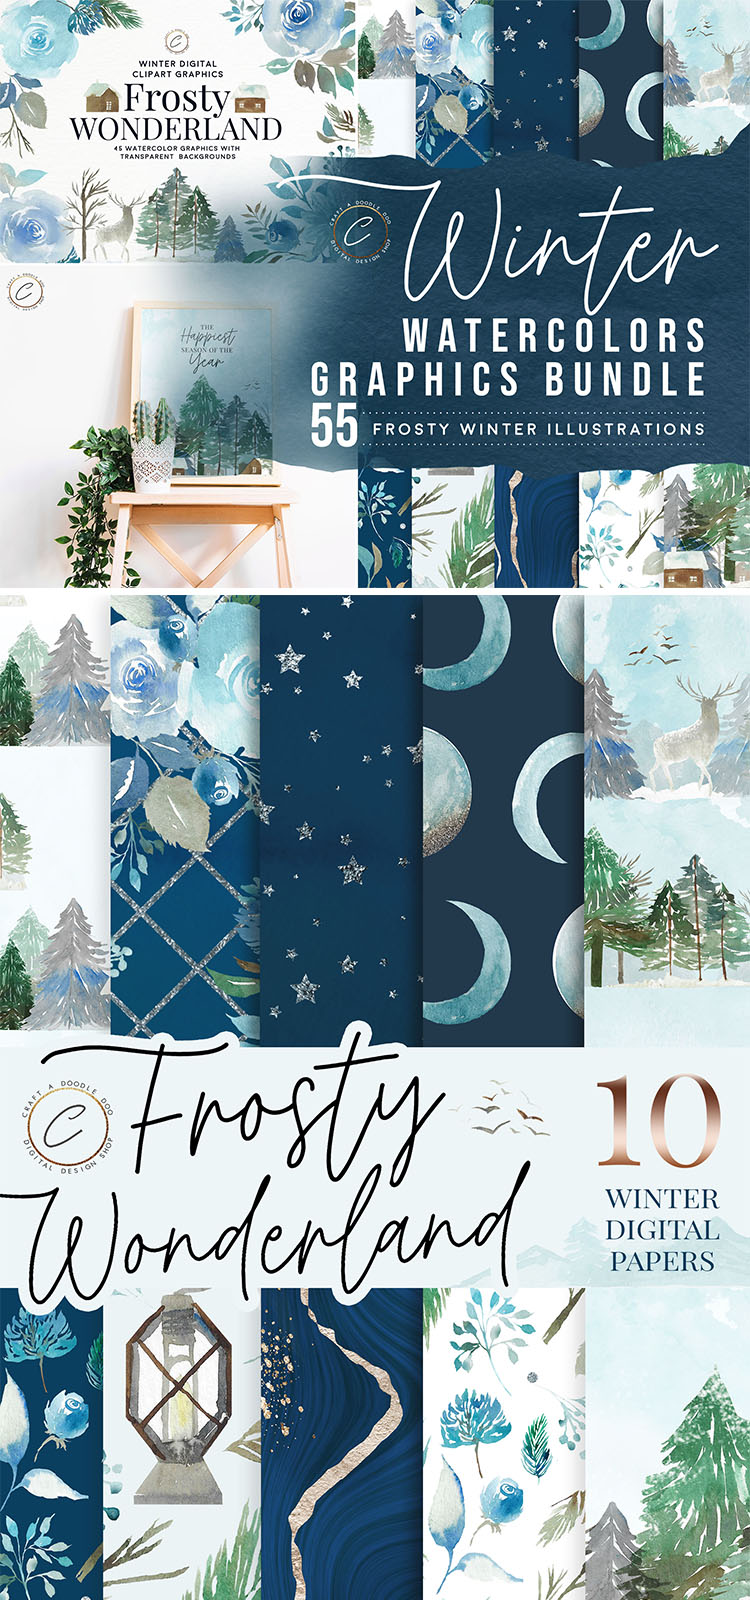 Winter Woodland Watercolor Clipart Christmas Holidays Digital | Etsy in  2020 | Winter woodland, Christmas watercolor, Watercolor clipart